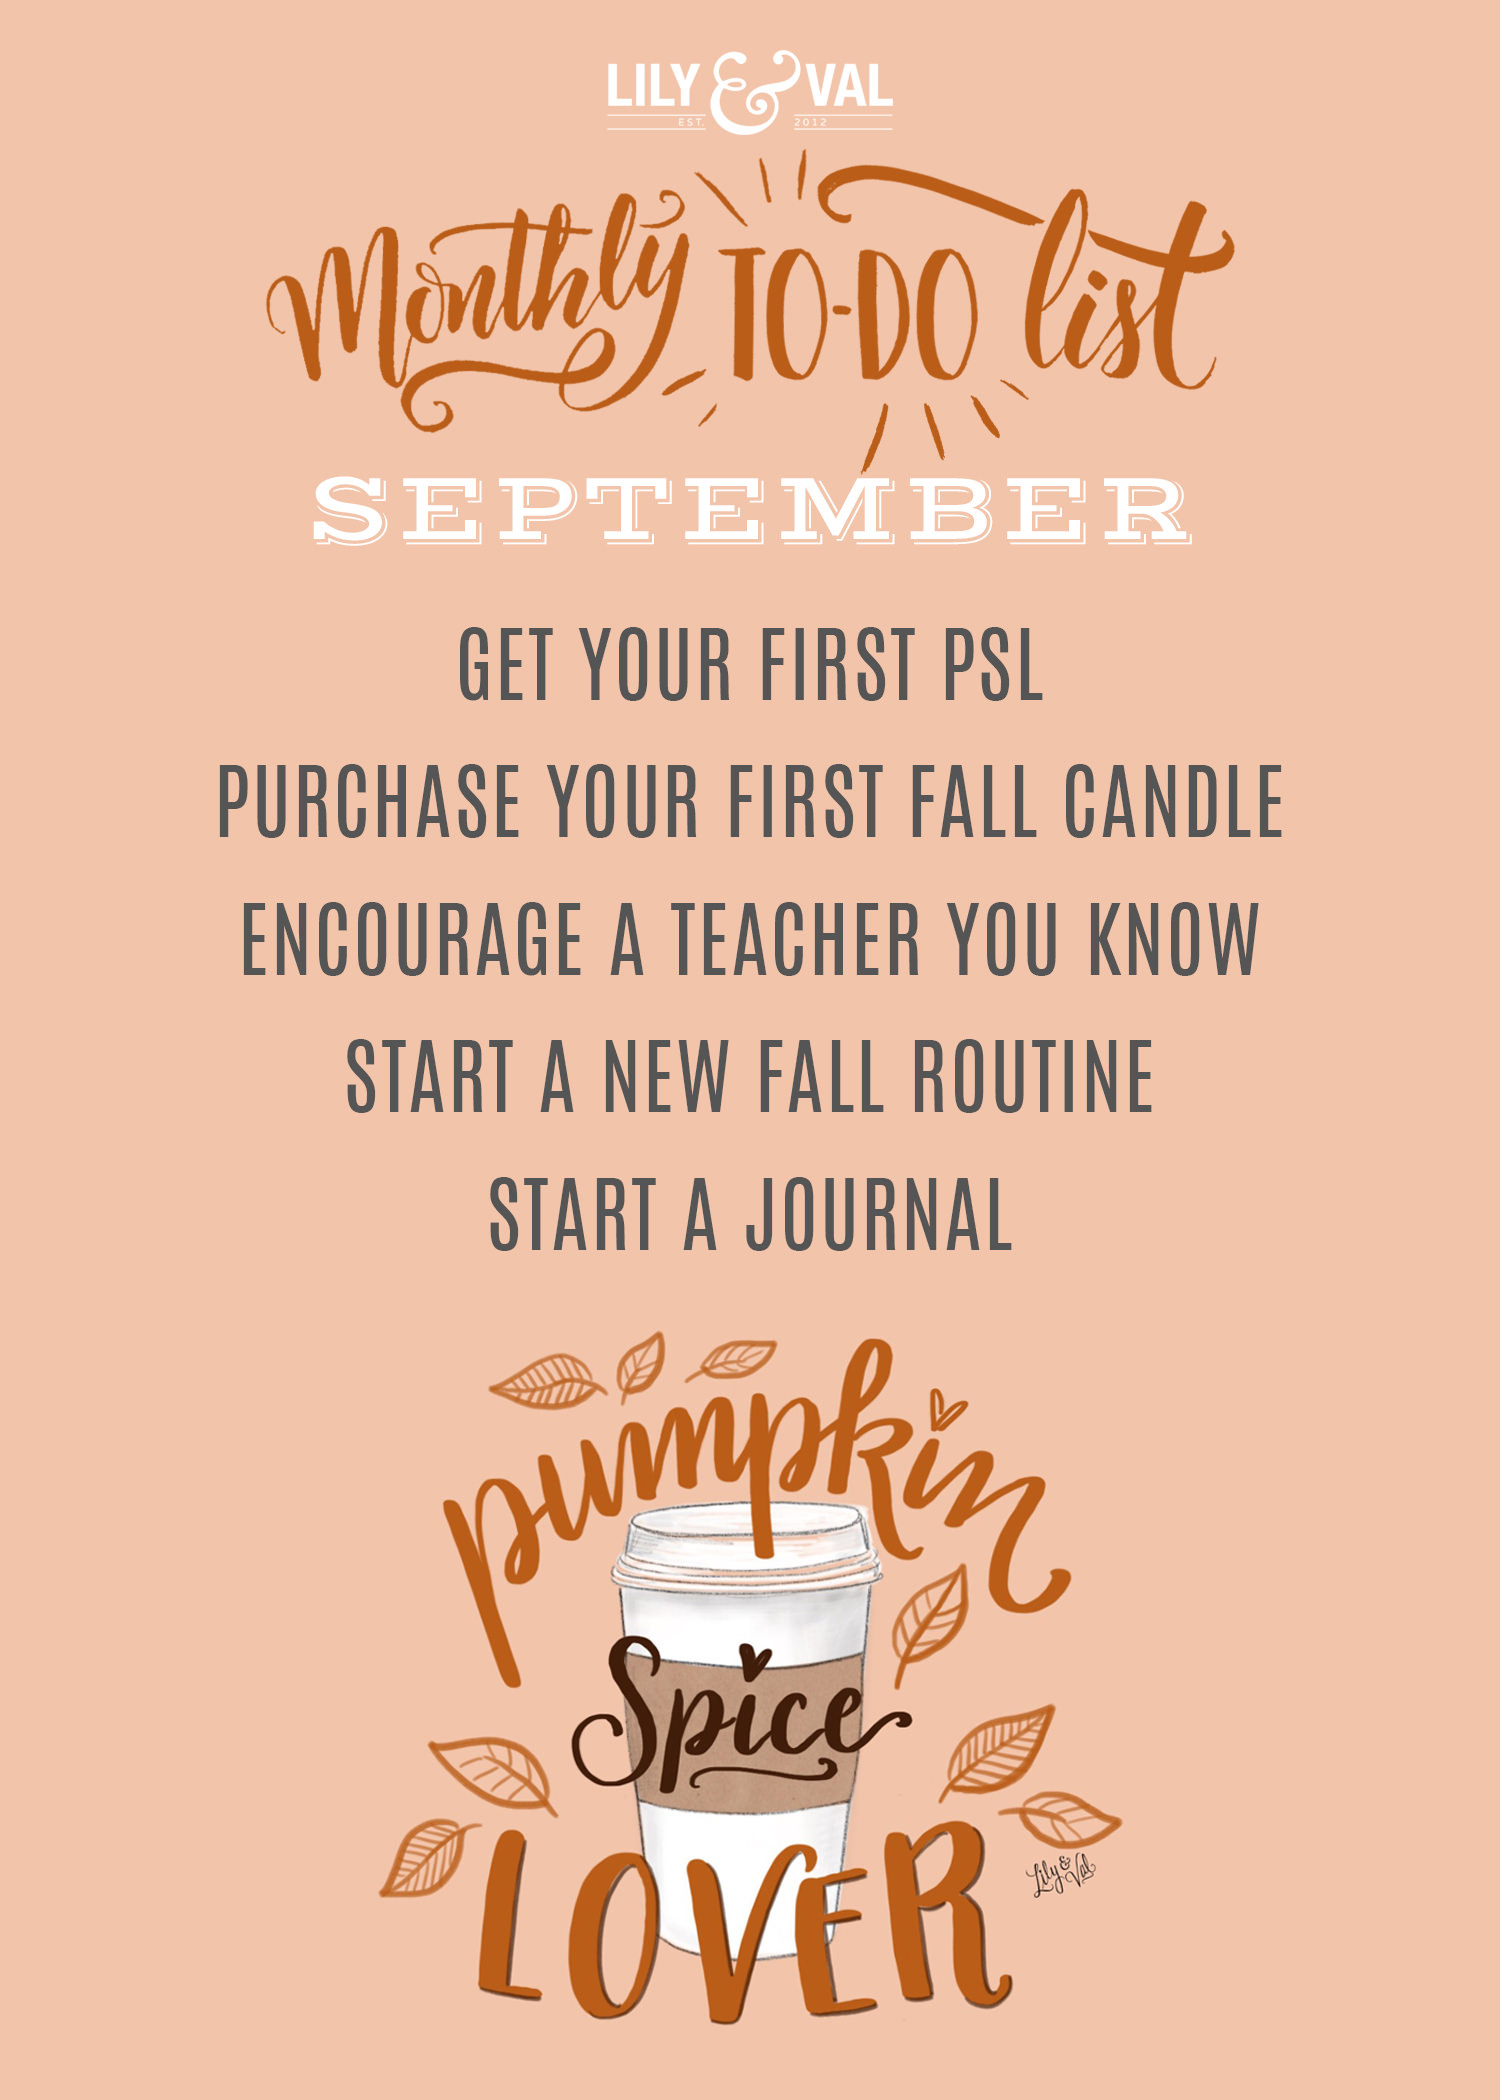 Download Lily & Val's free September to-do list to celebrate the start of Fall!